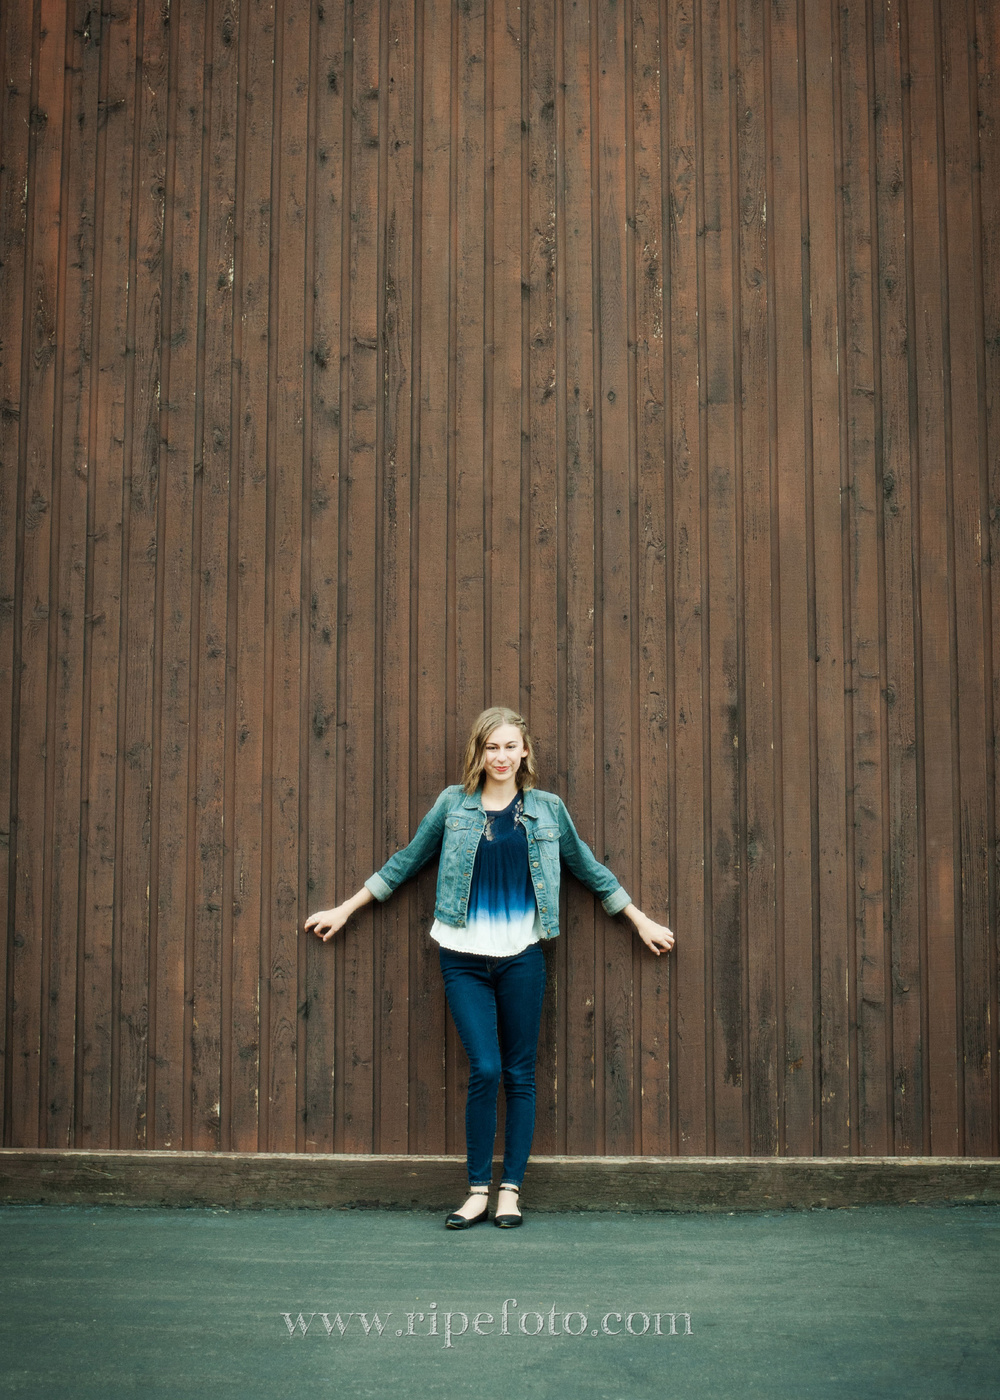 High school senior portrait of girl on wooden background by senior portrait photographers at Ripe Photography in Portland, Oregon.